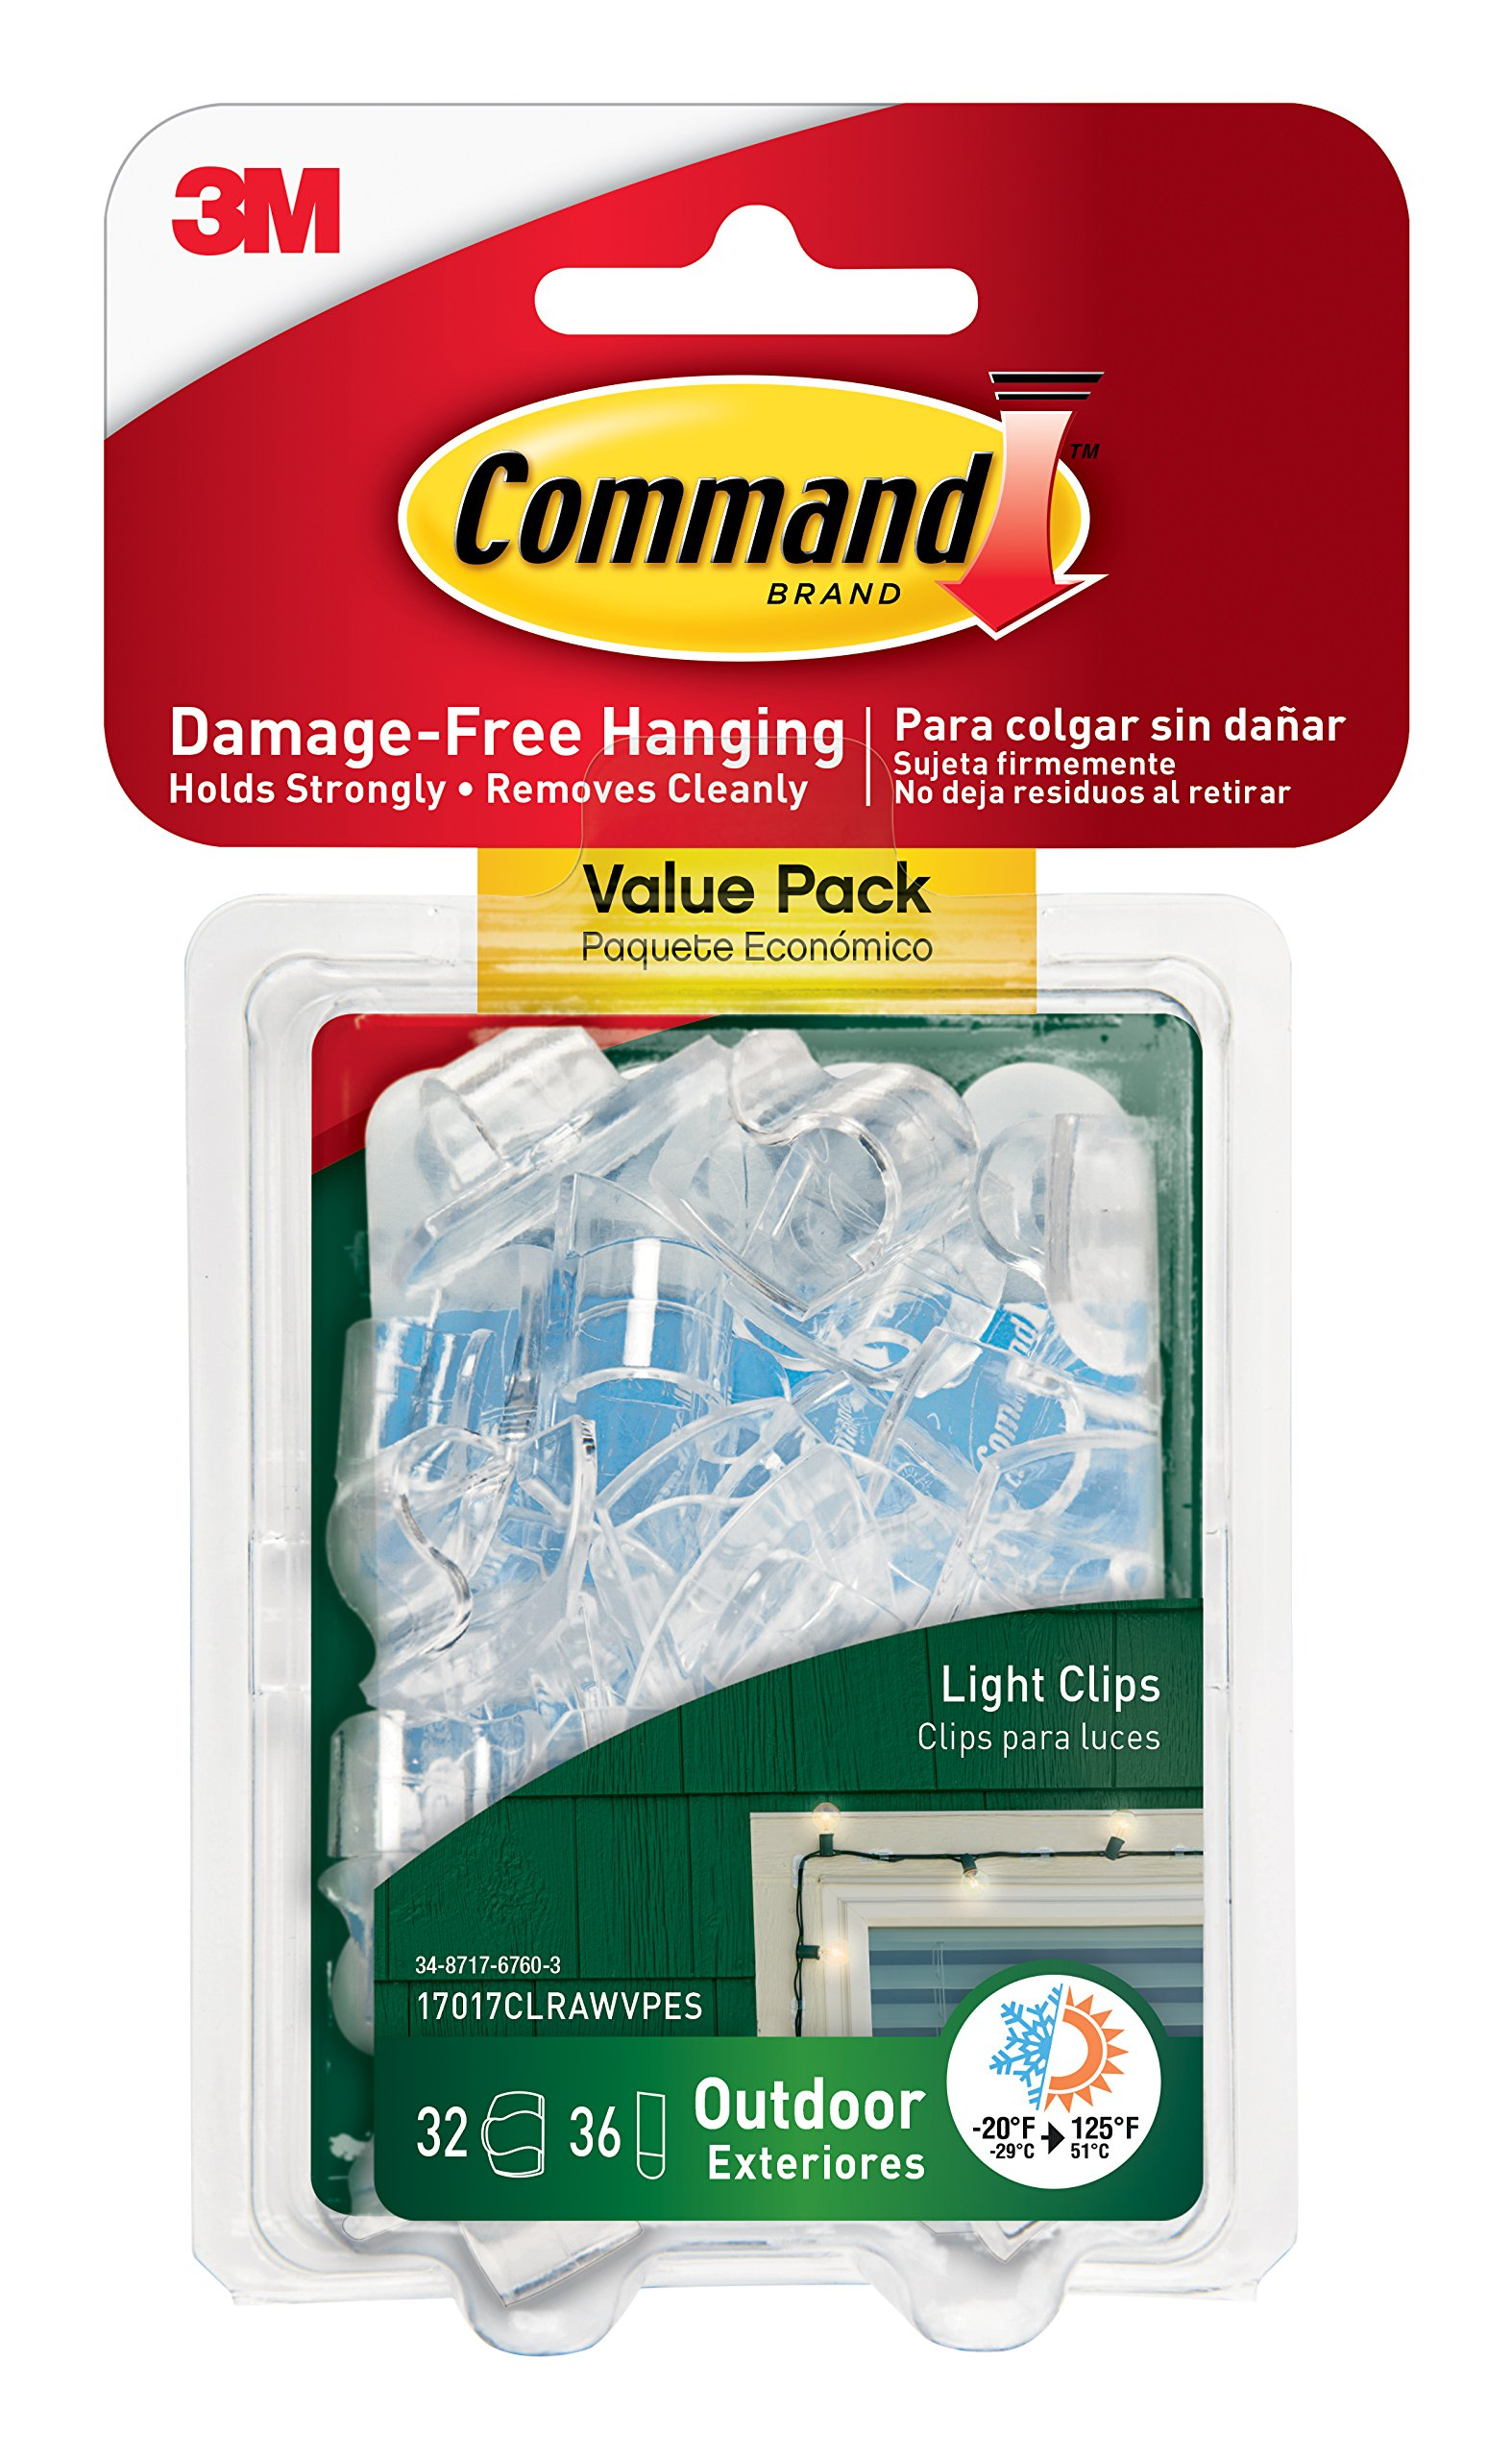 Command Outdoor Light Clips Value Pack, Clear, 32-Clips (17017CLRAWVPES)